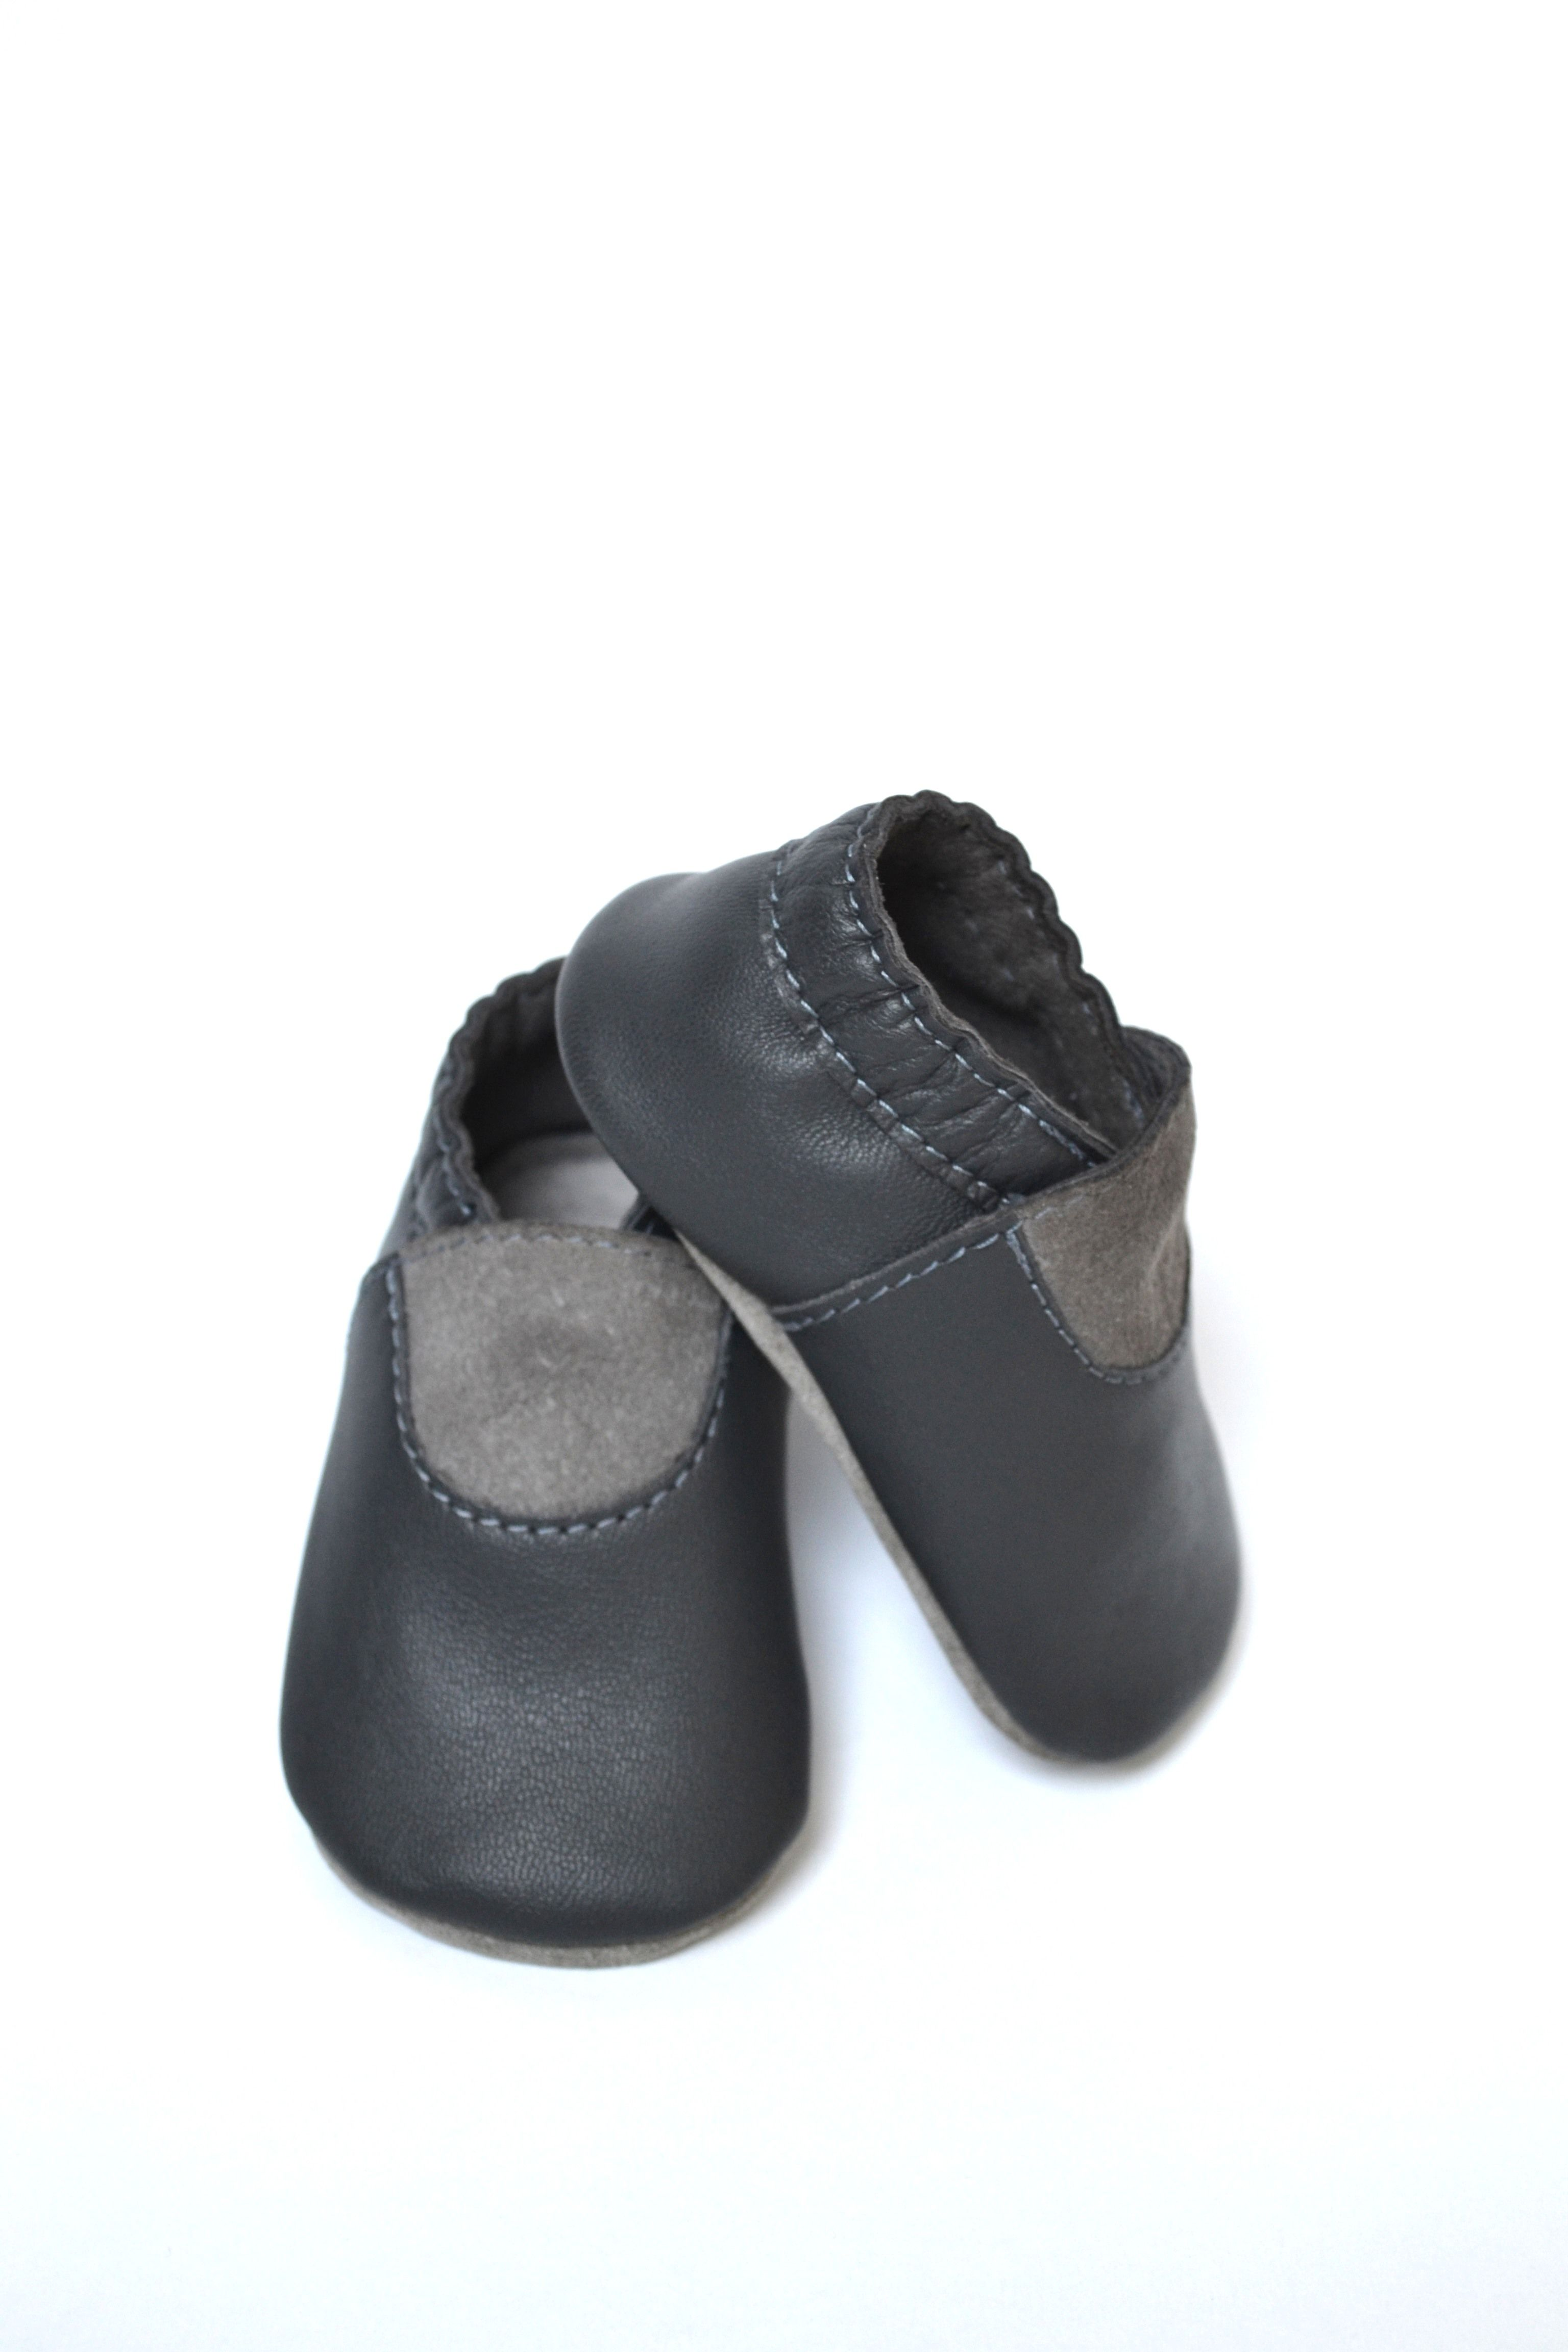 Baby leather moccasins Gray baby shoes Baby boy moccasins Gender